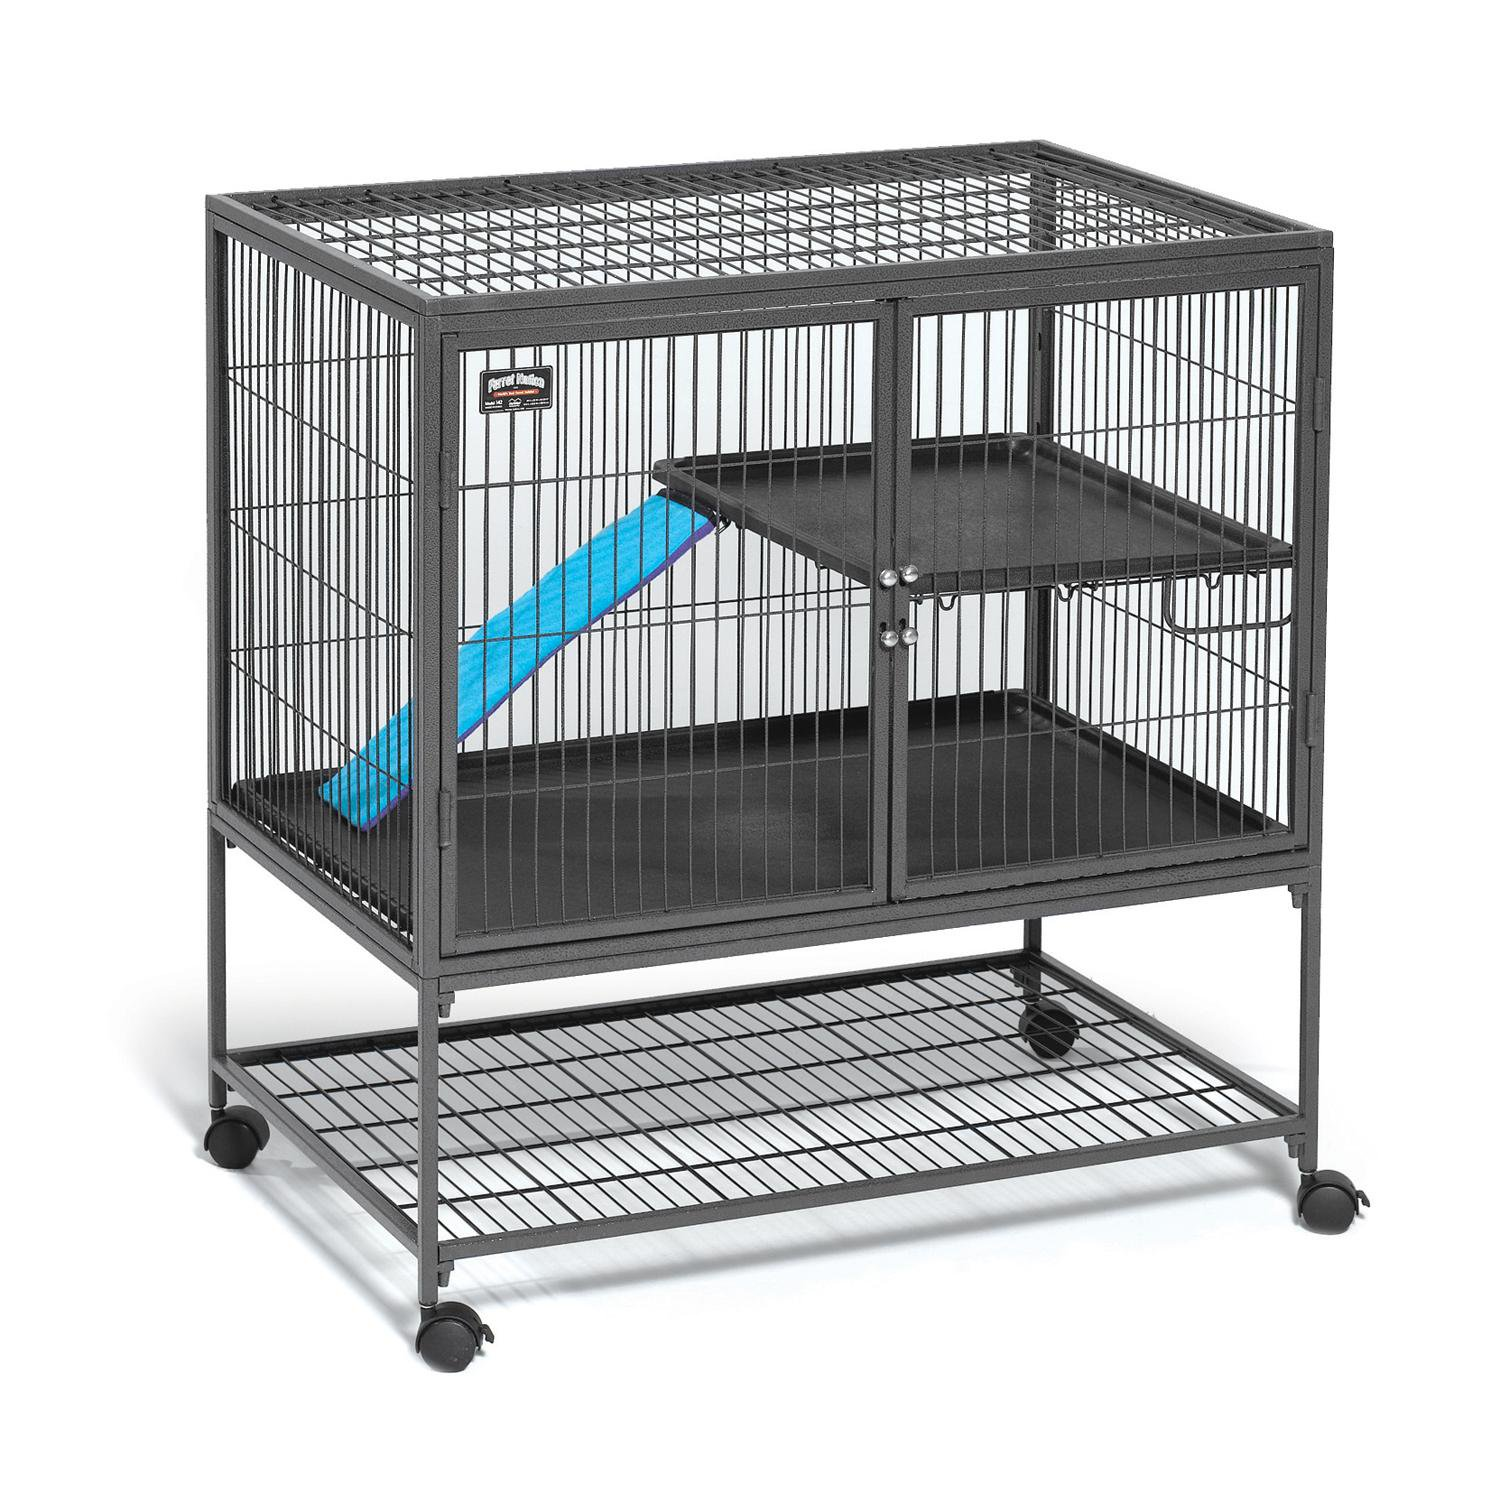 Midwest Ferret Nation Single Unit with Stand Ferret Cage 36 L X 25 W X 38.5 H 36 IN Gray